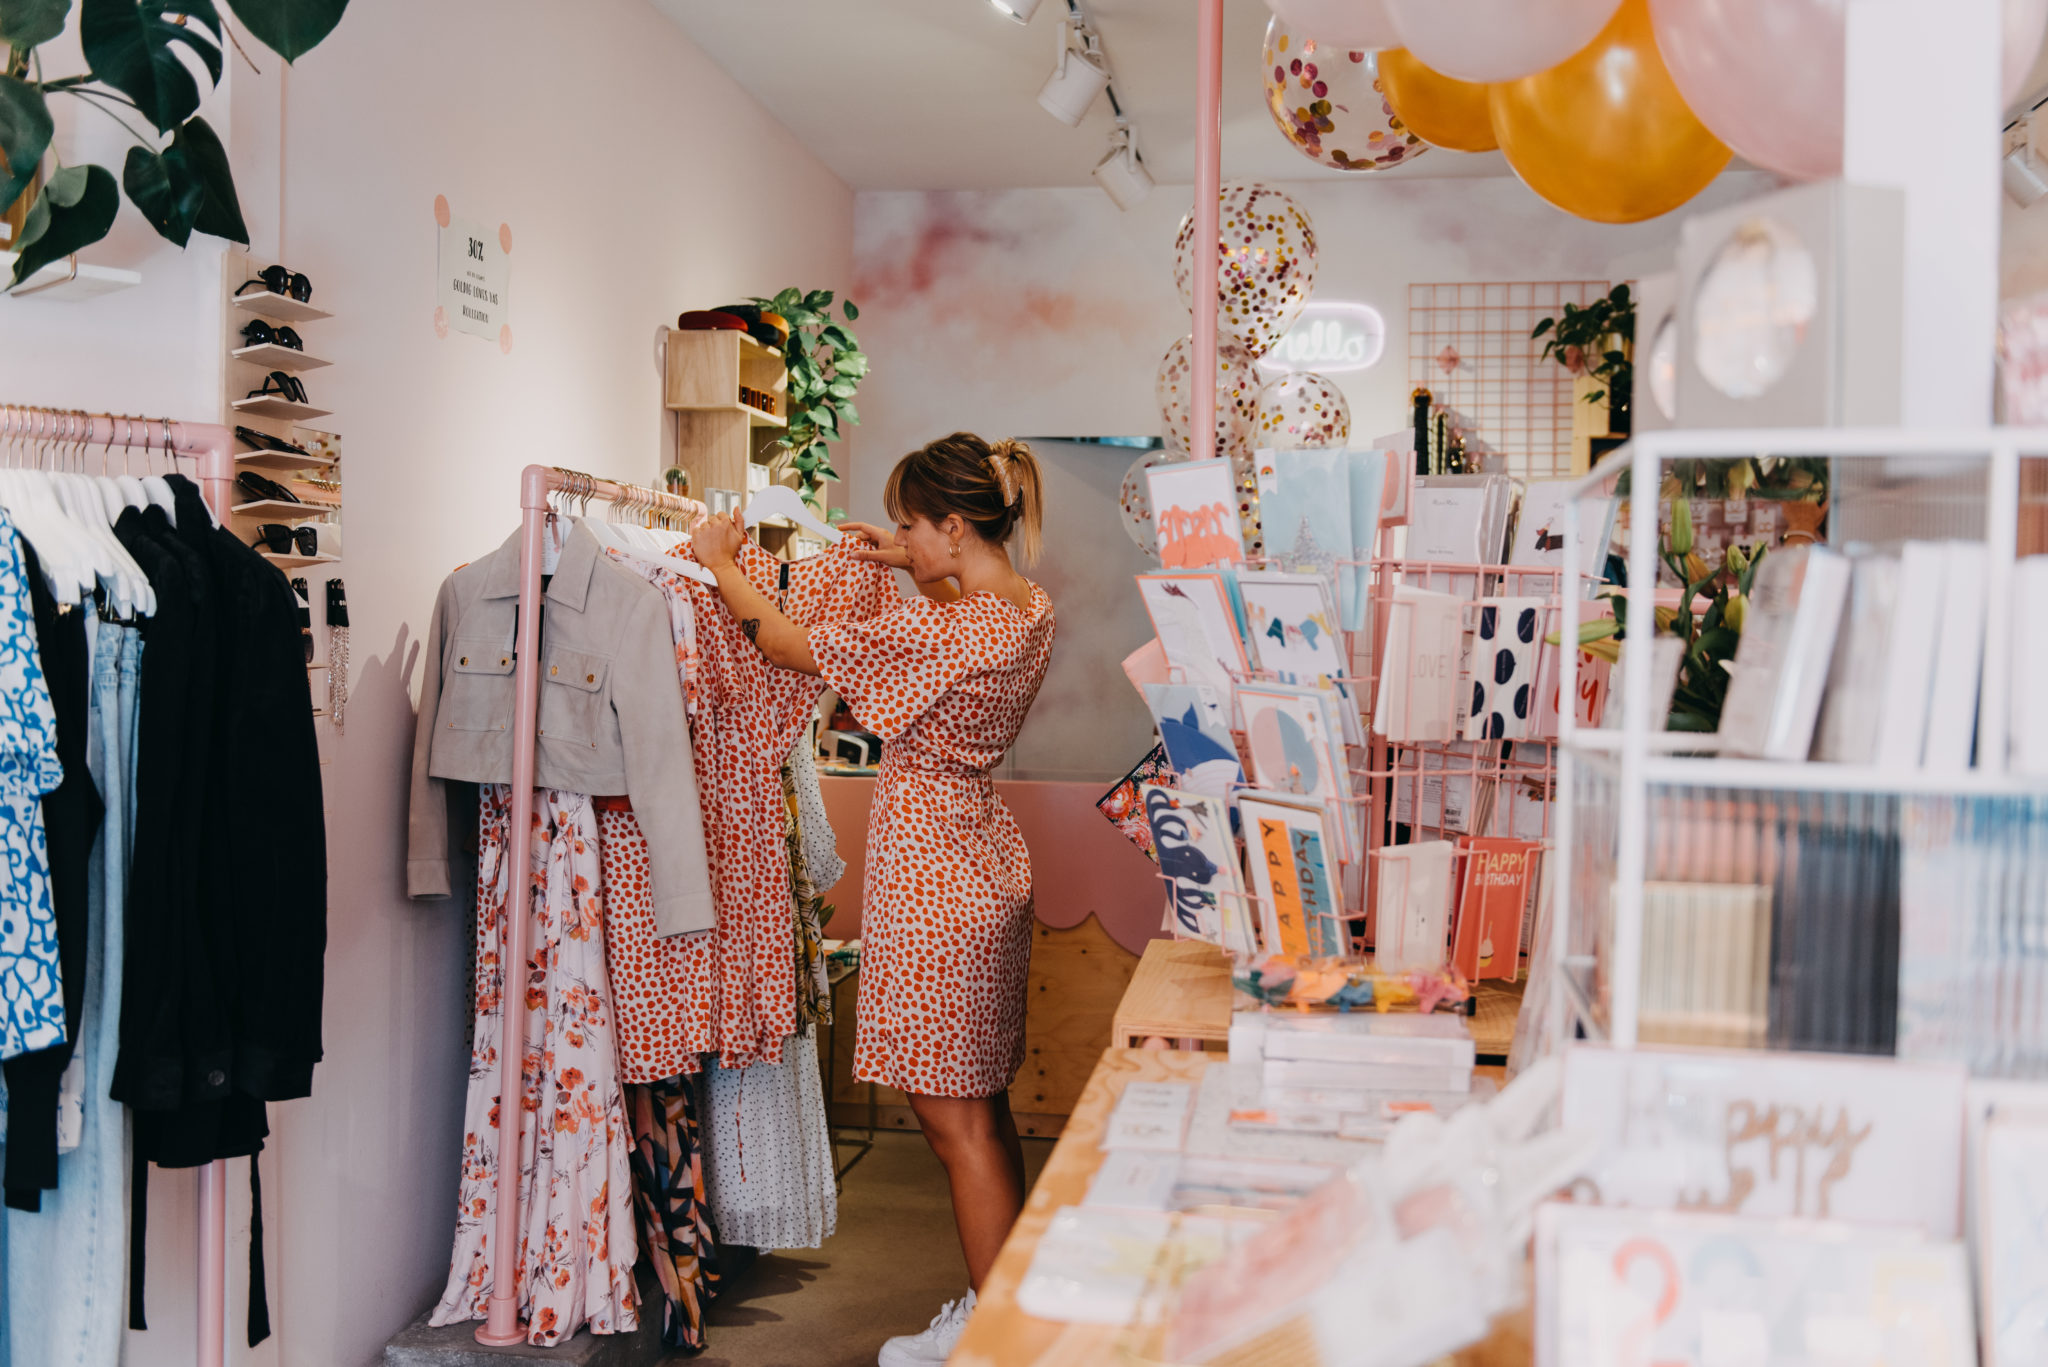 Female shop owner in her small concept store